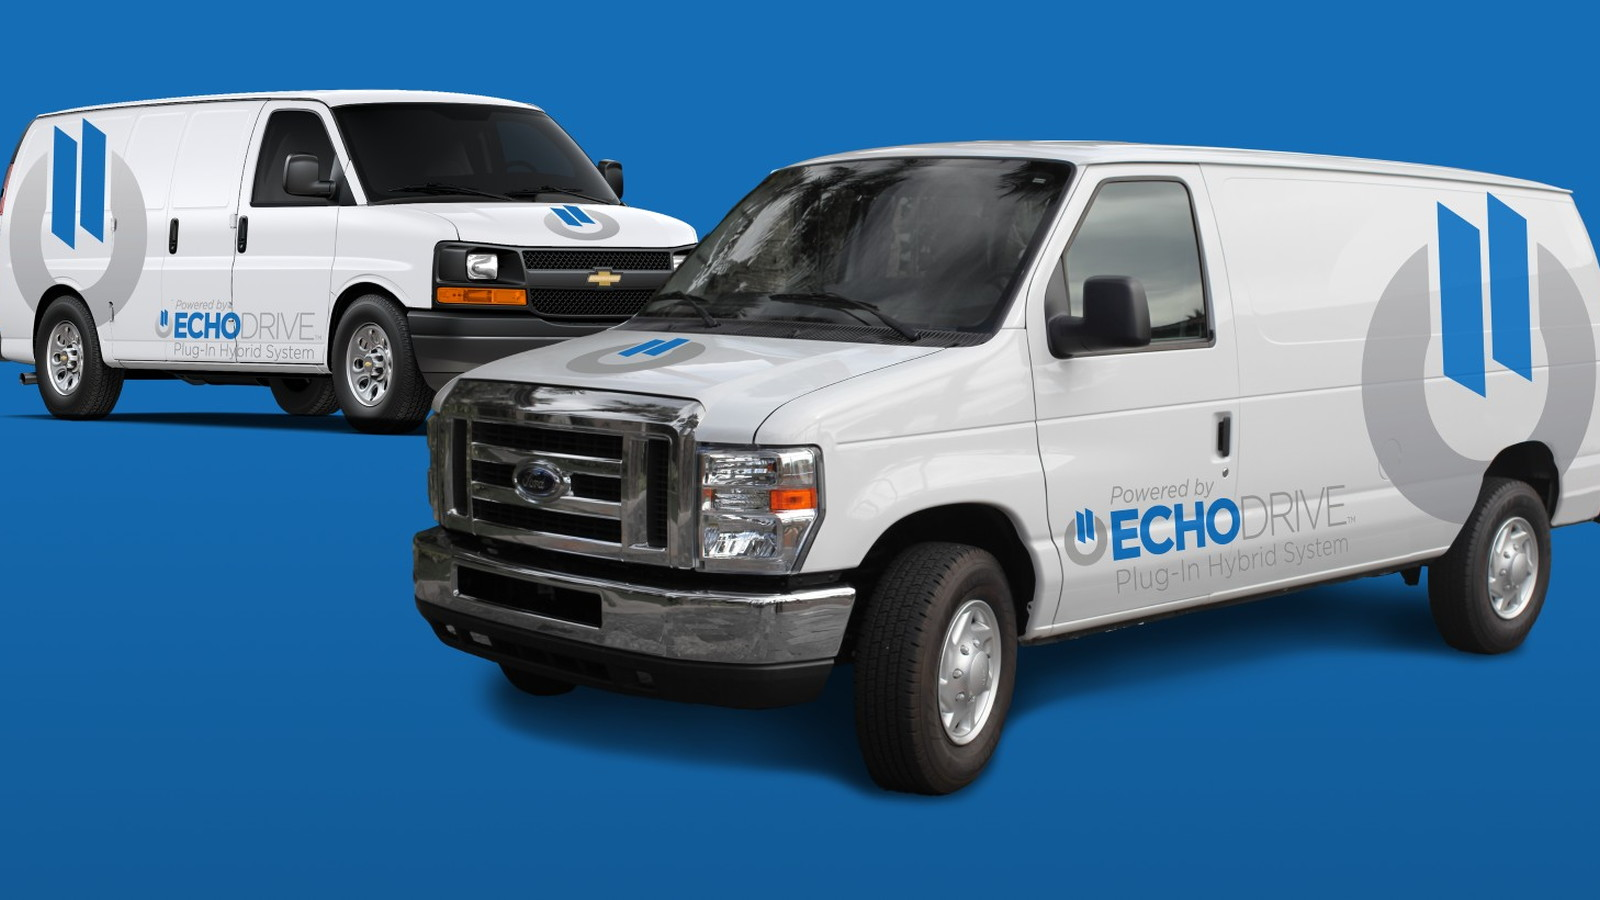 Echo Automotive's EchoDrive bolt-on plug-in hybrid kit